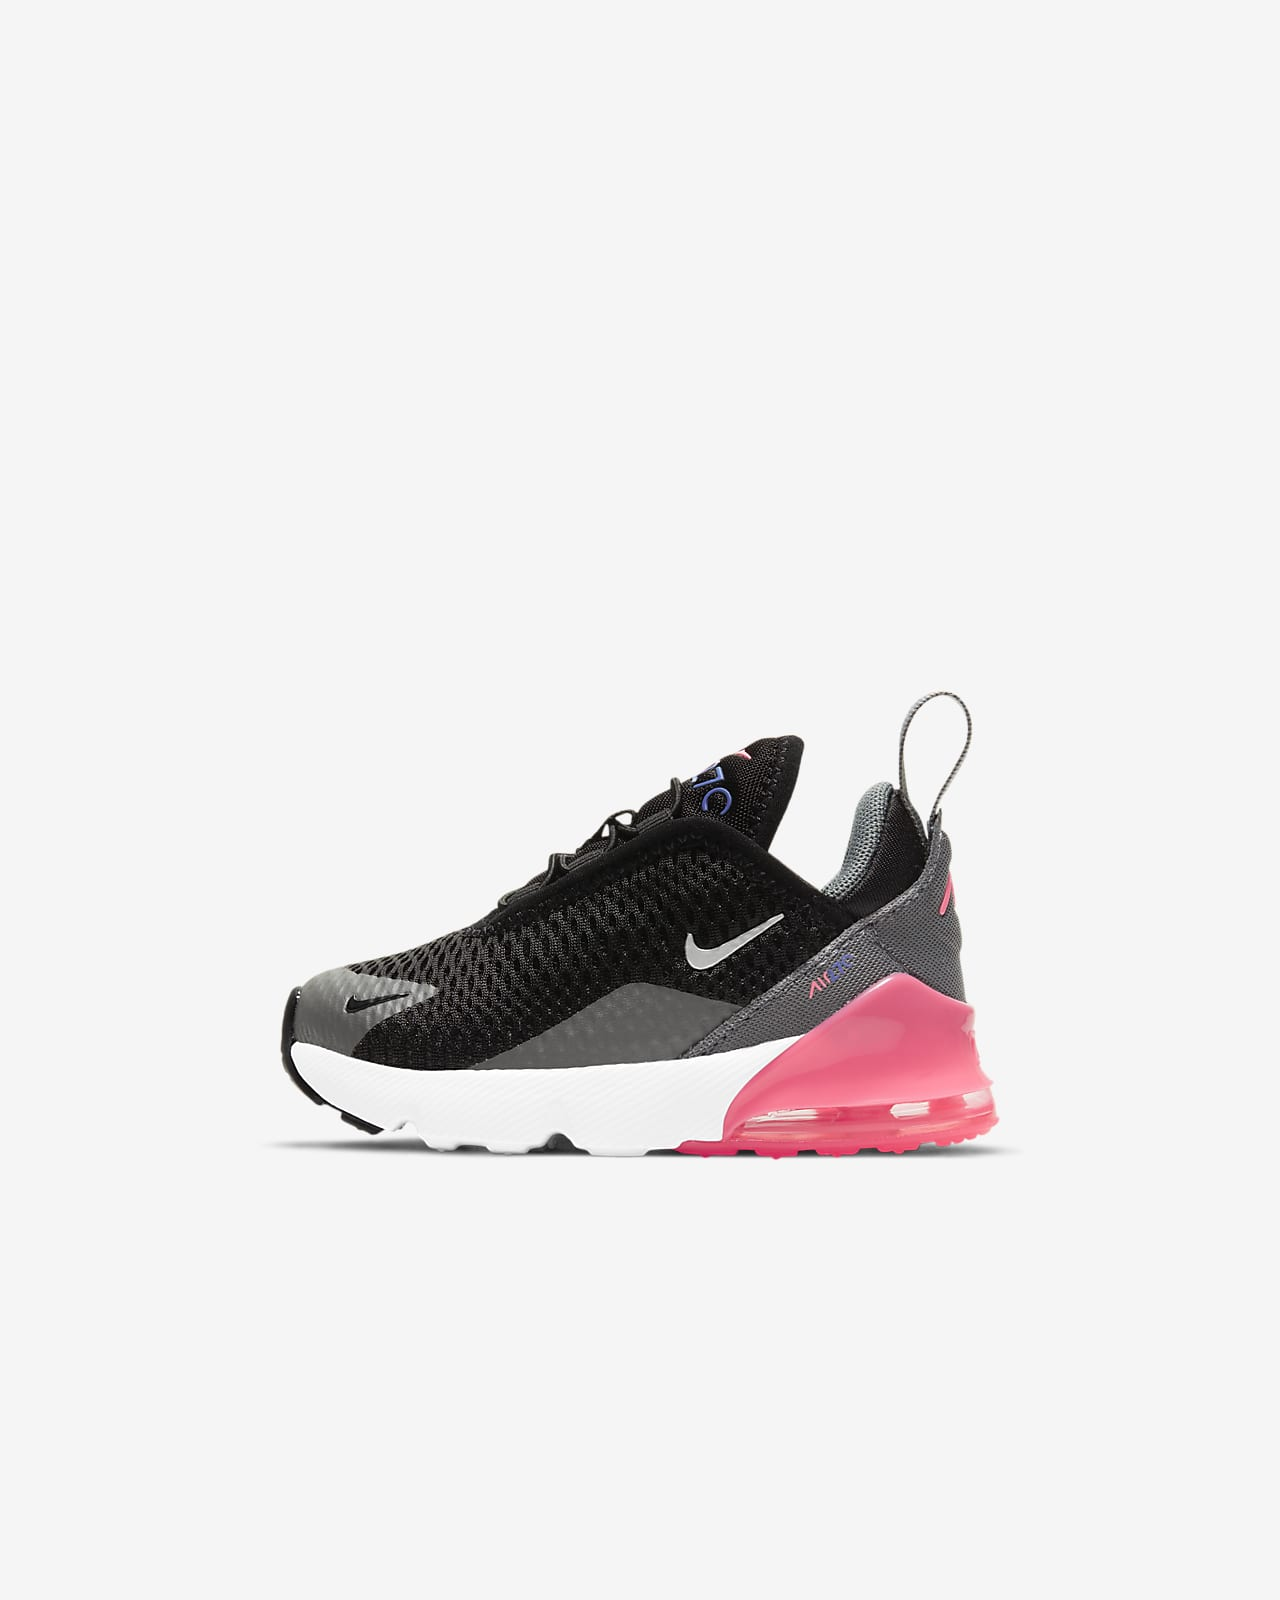 Nike Air Max 270 Baby and Toddler Shoe